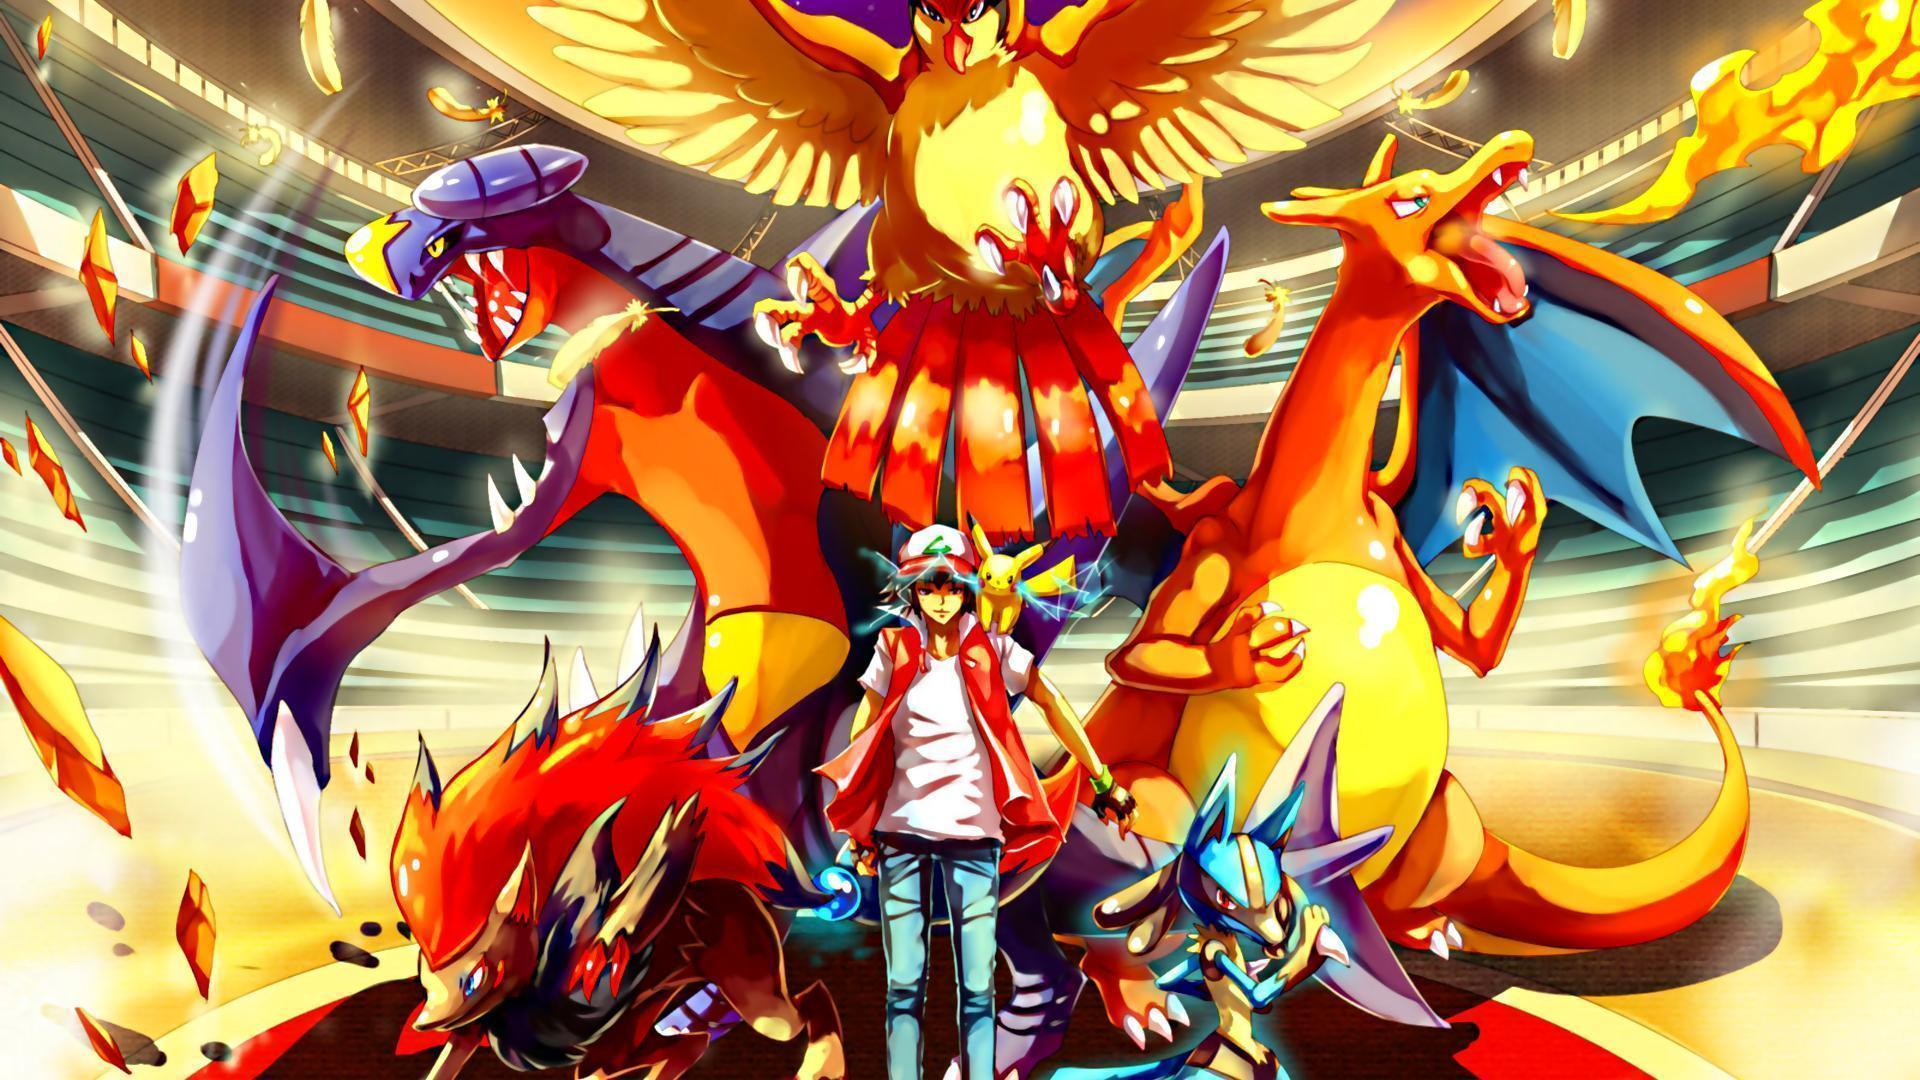 Download Pokemon Red Stadium Papel Parede Wallpapers 1920x1080